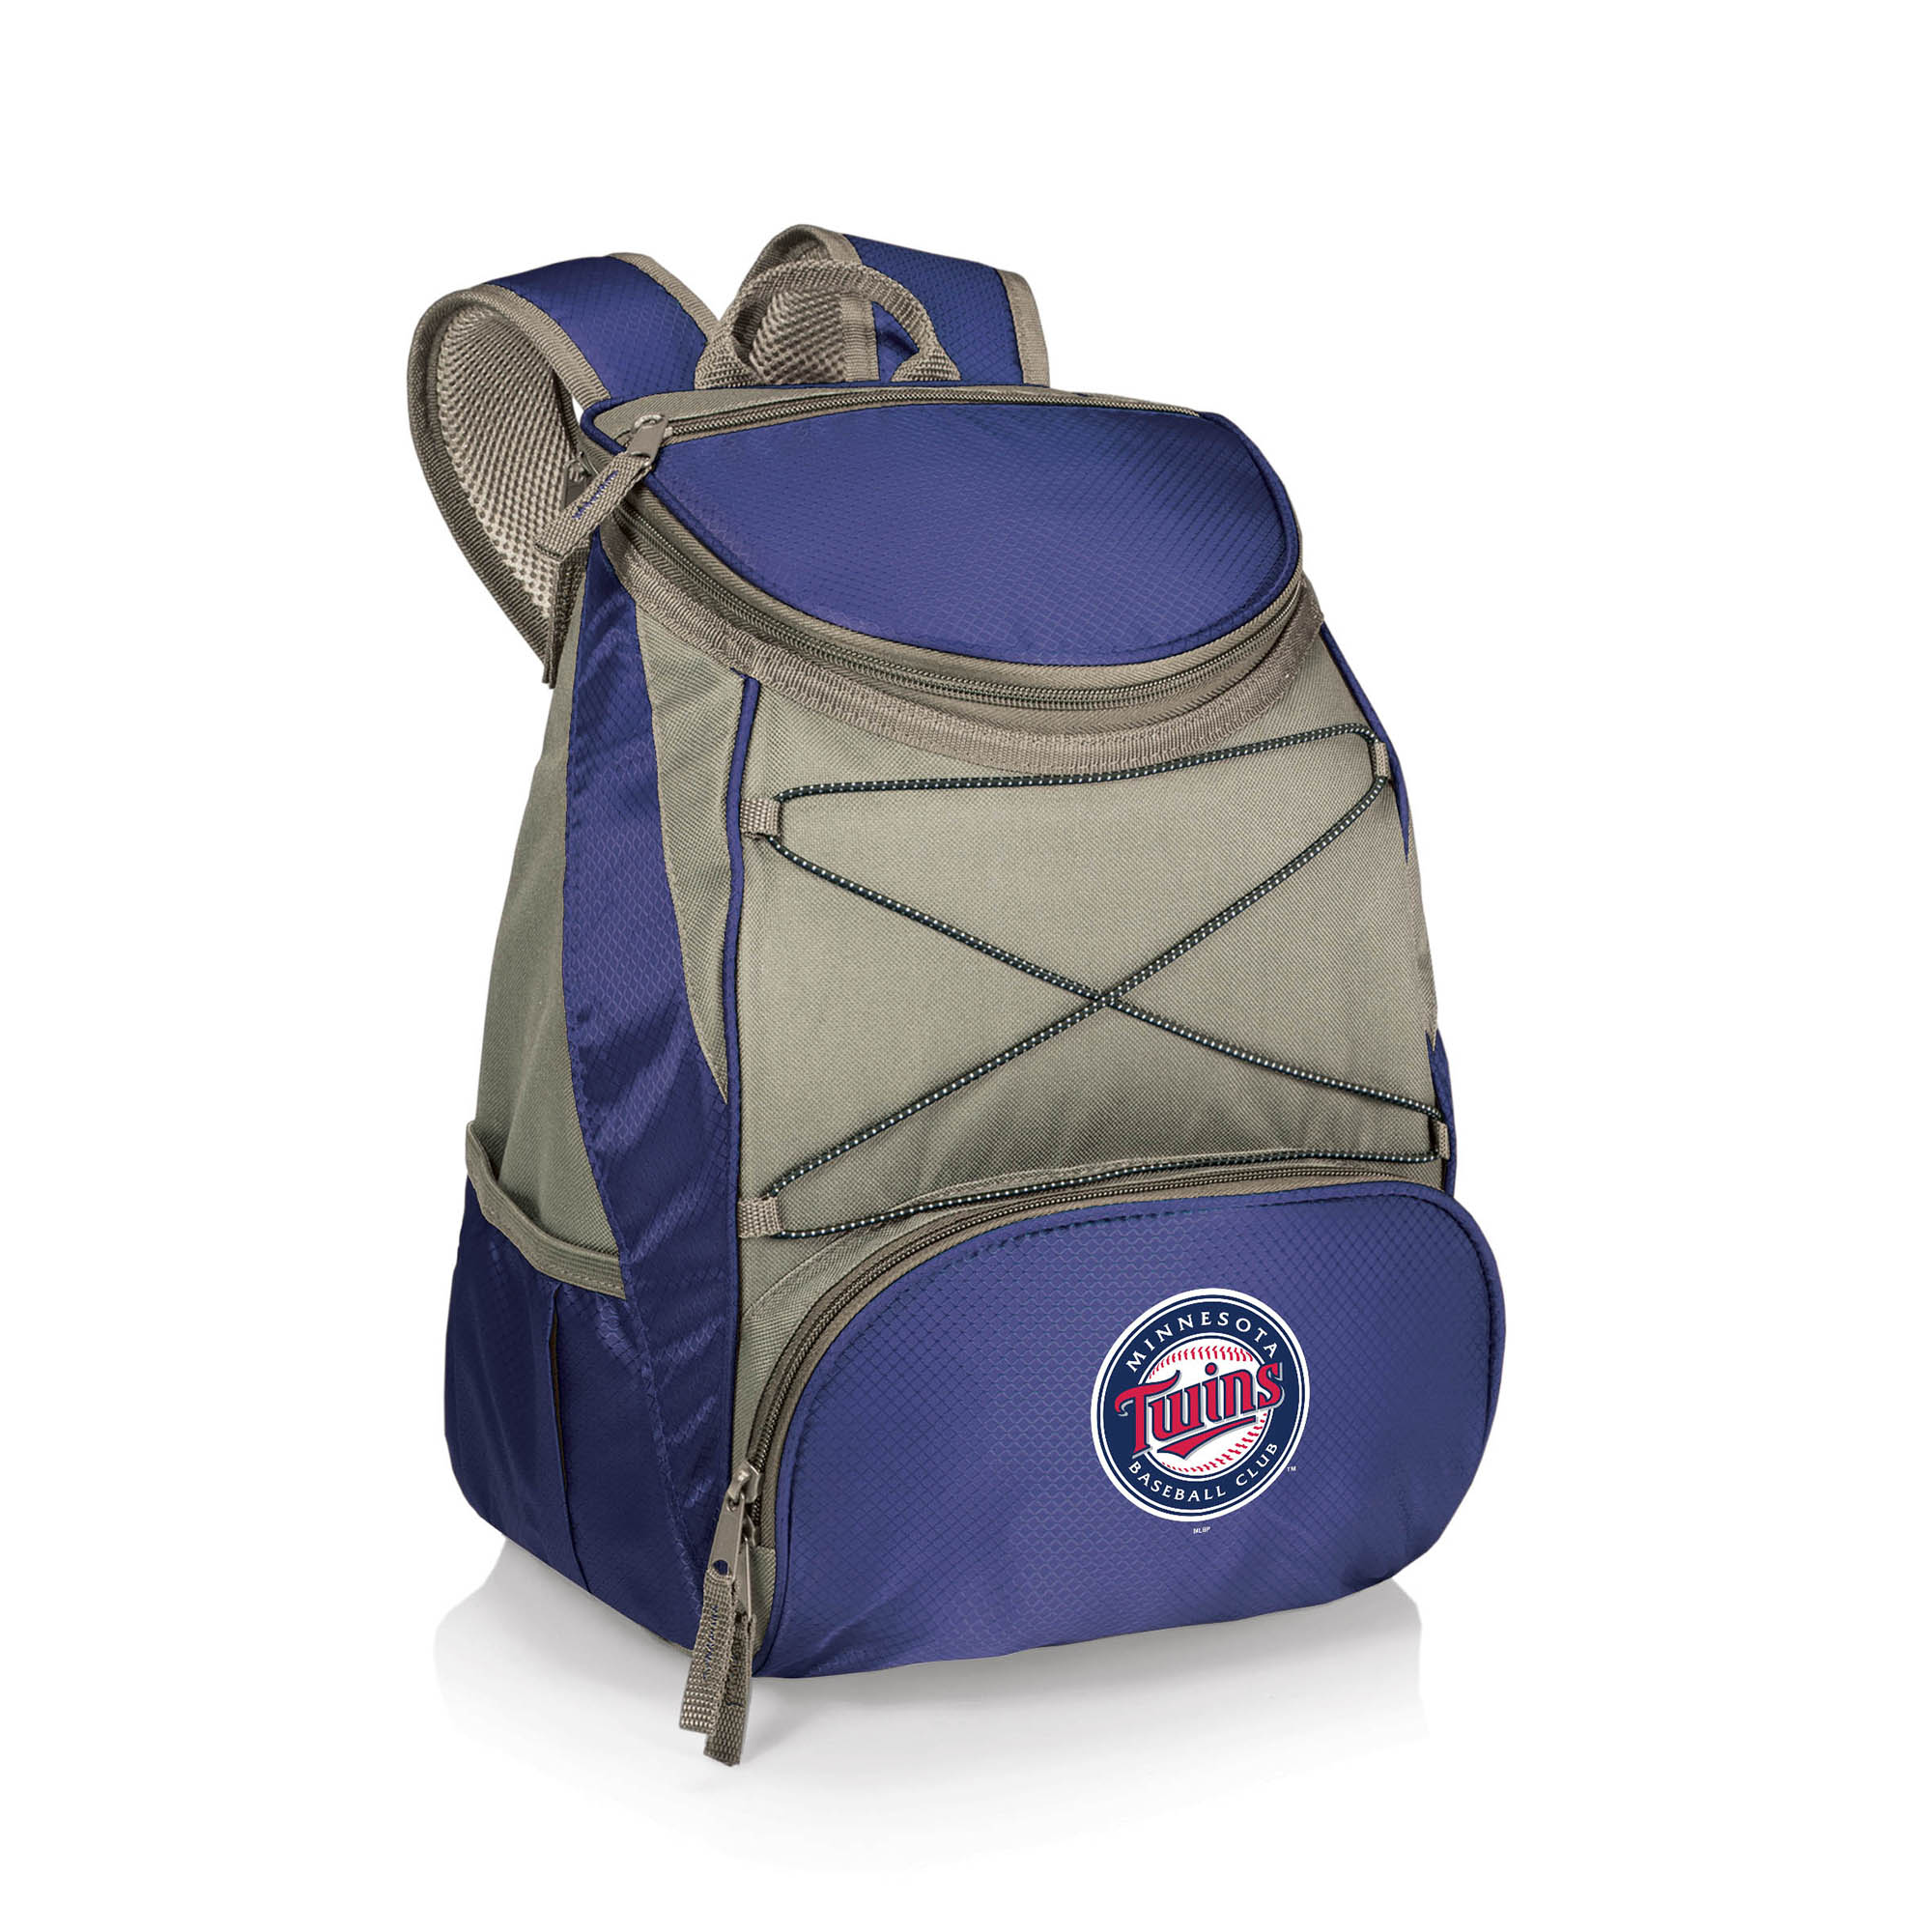 Minnesota Twins PTX Backpack Cooler - Navy - No Size